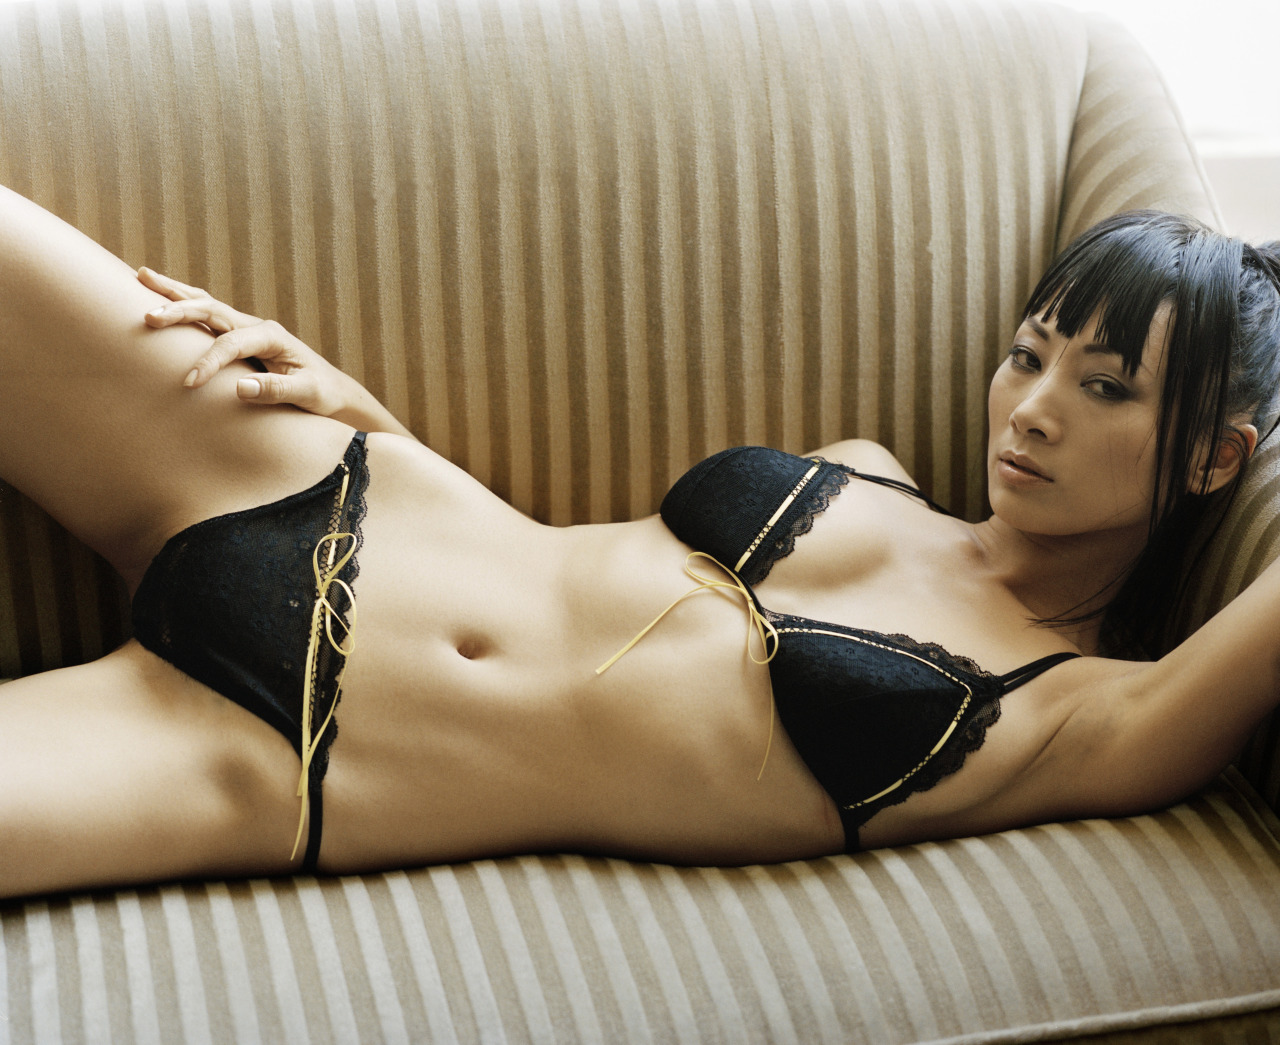 Bai Ling #Bai Ling#actress#celebrity#gorgeous#stunning#hot celebs#hottie